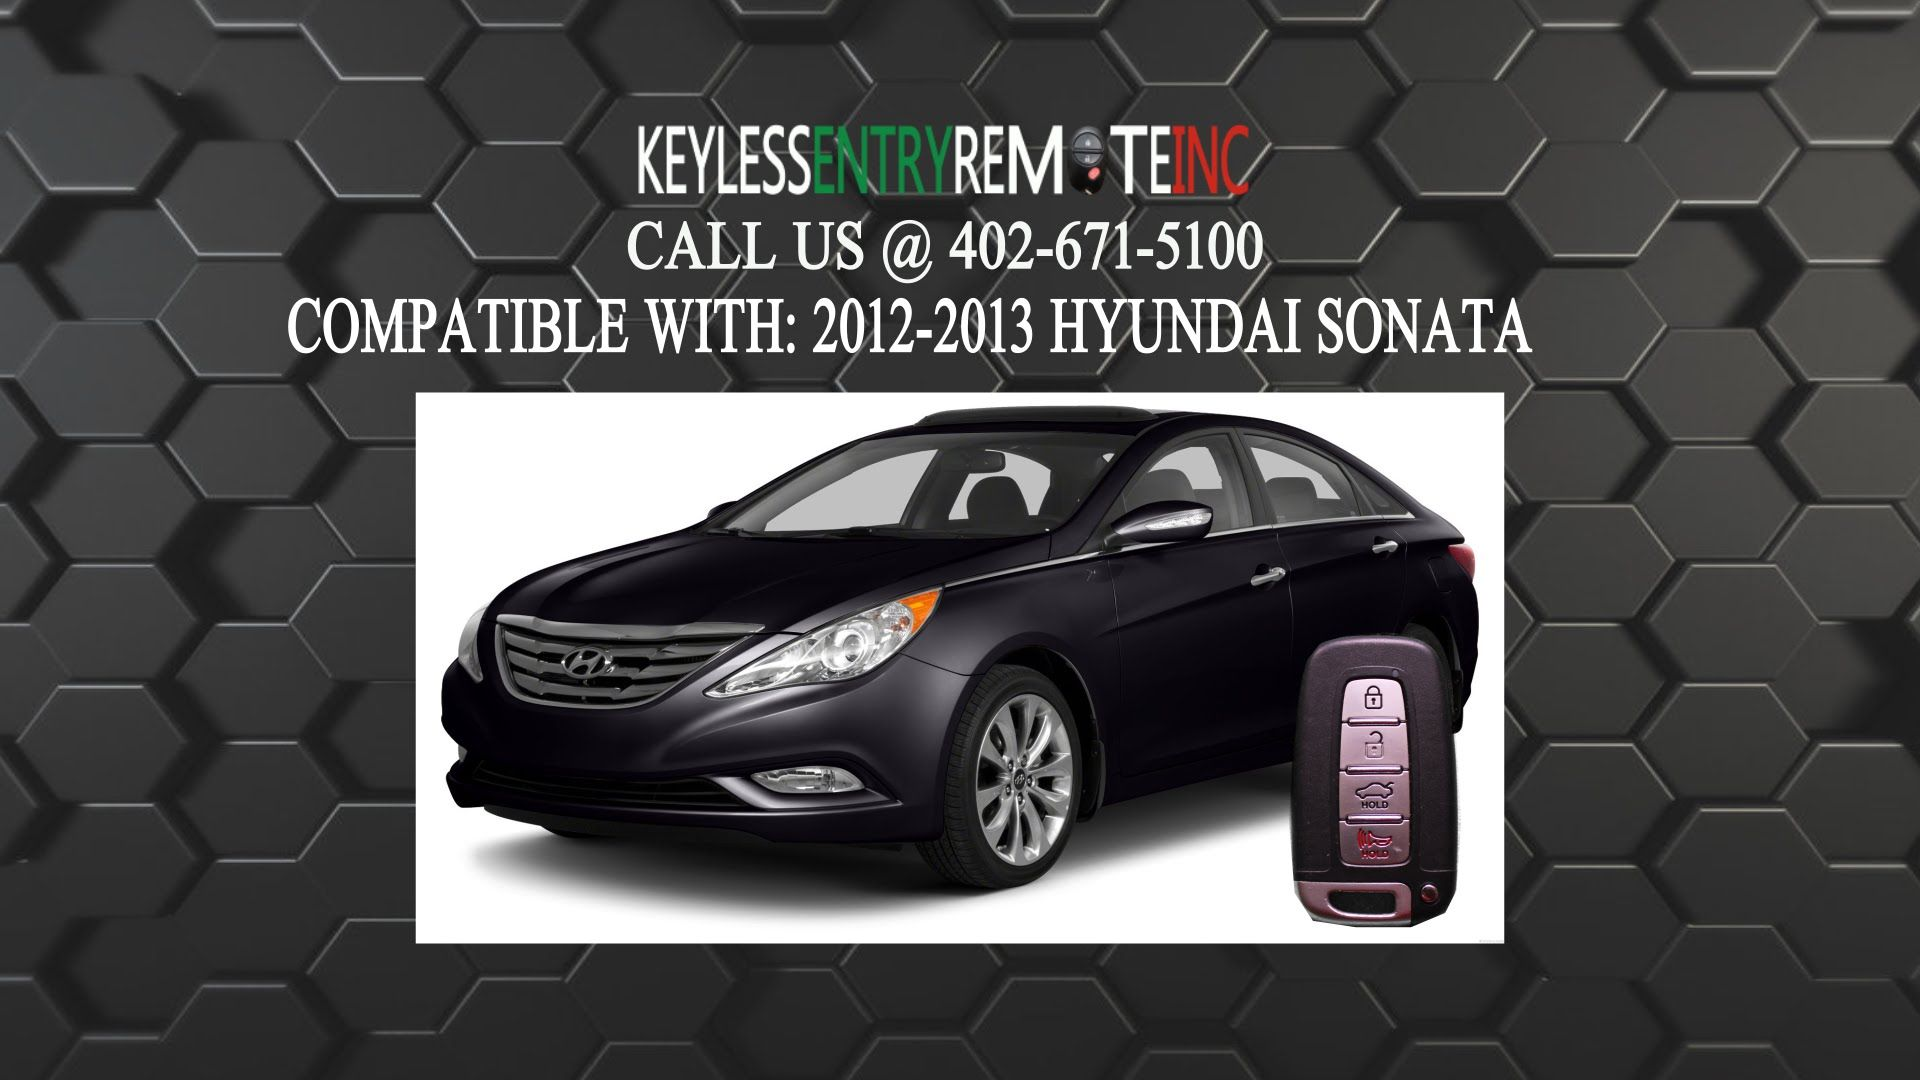 How To Replace Hyundai Sonata Key Fob Battery 2017